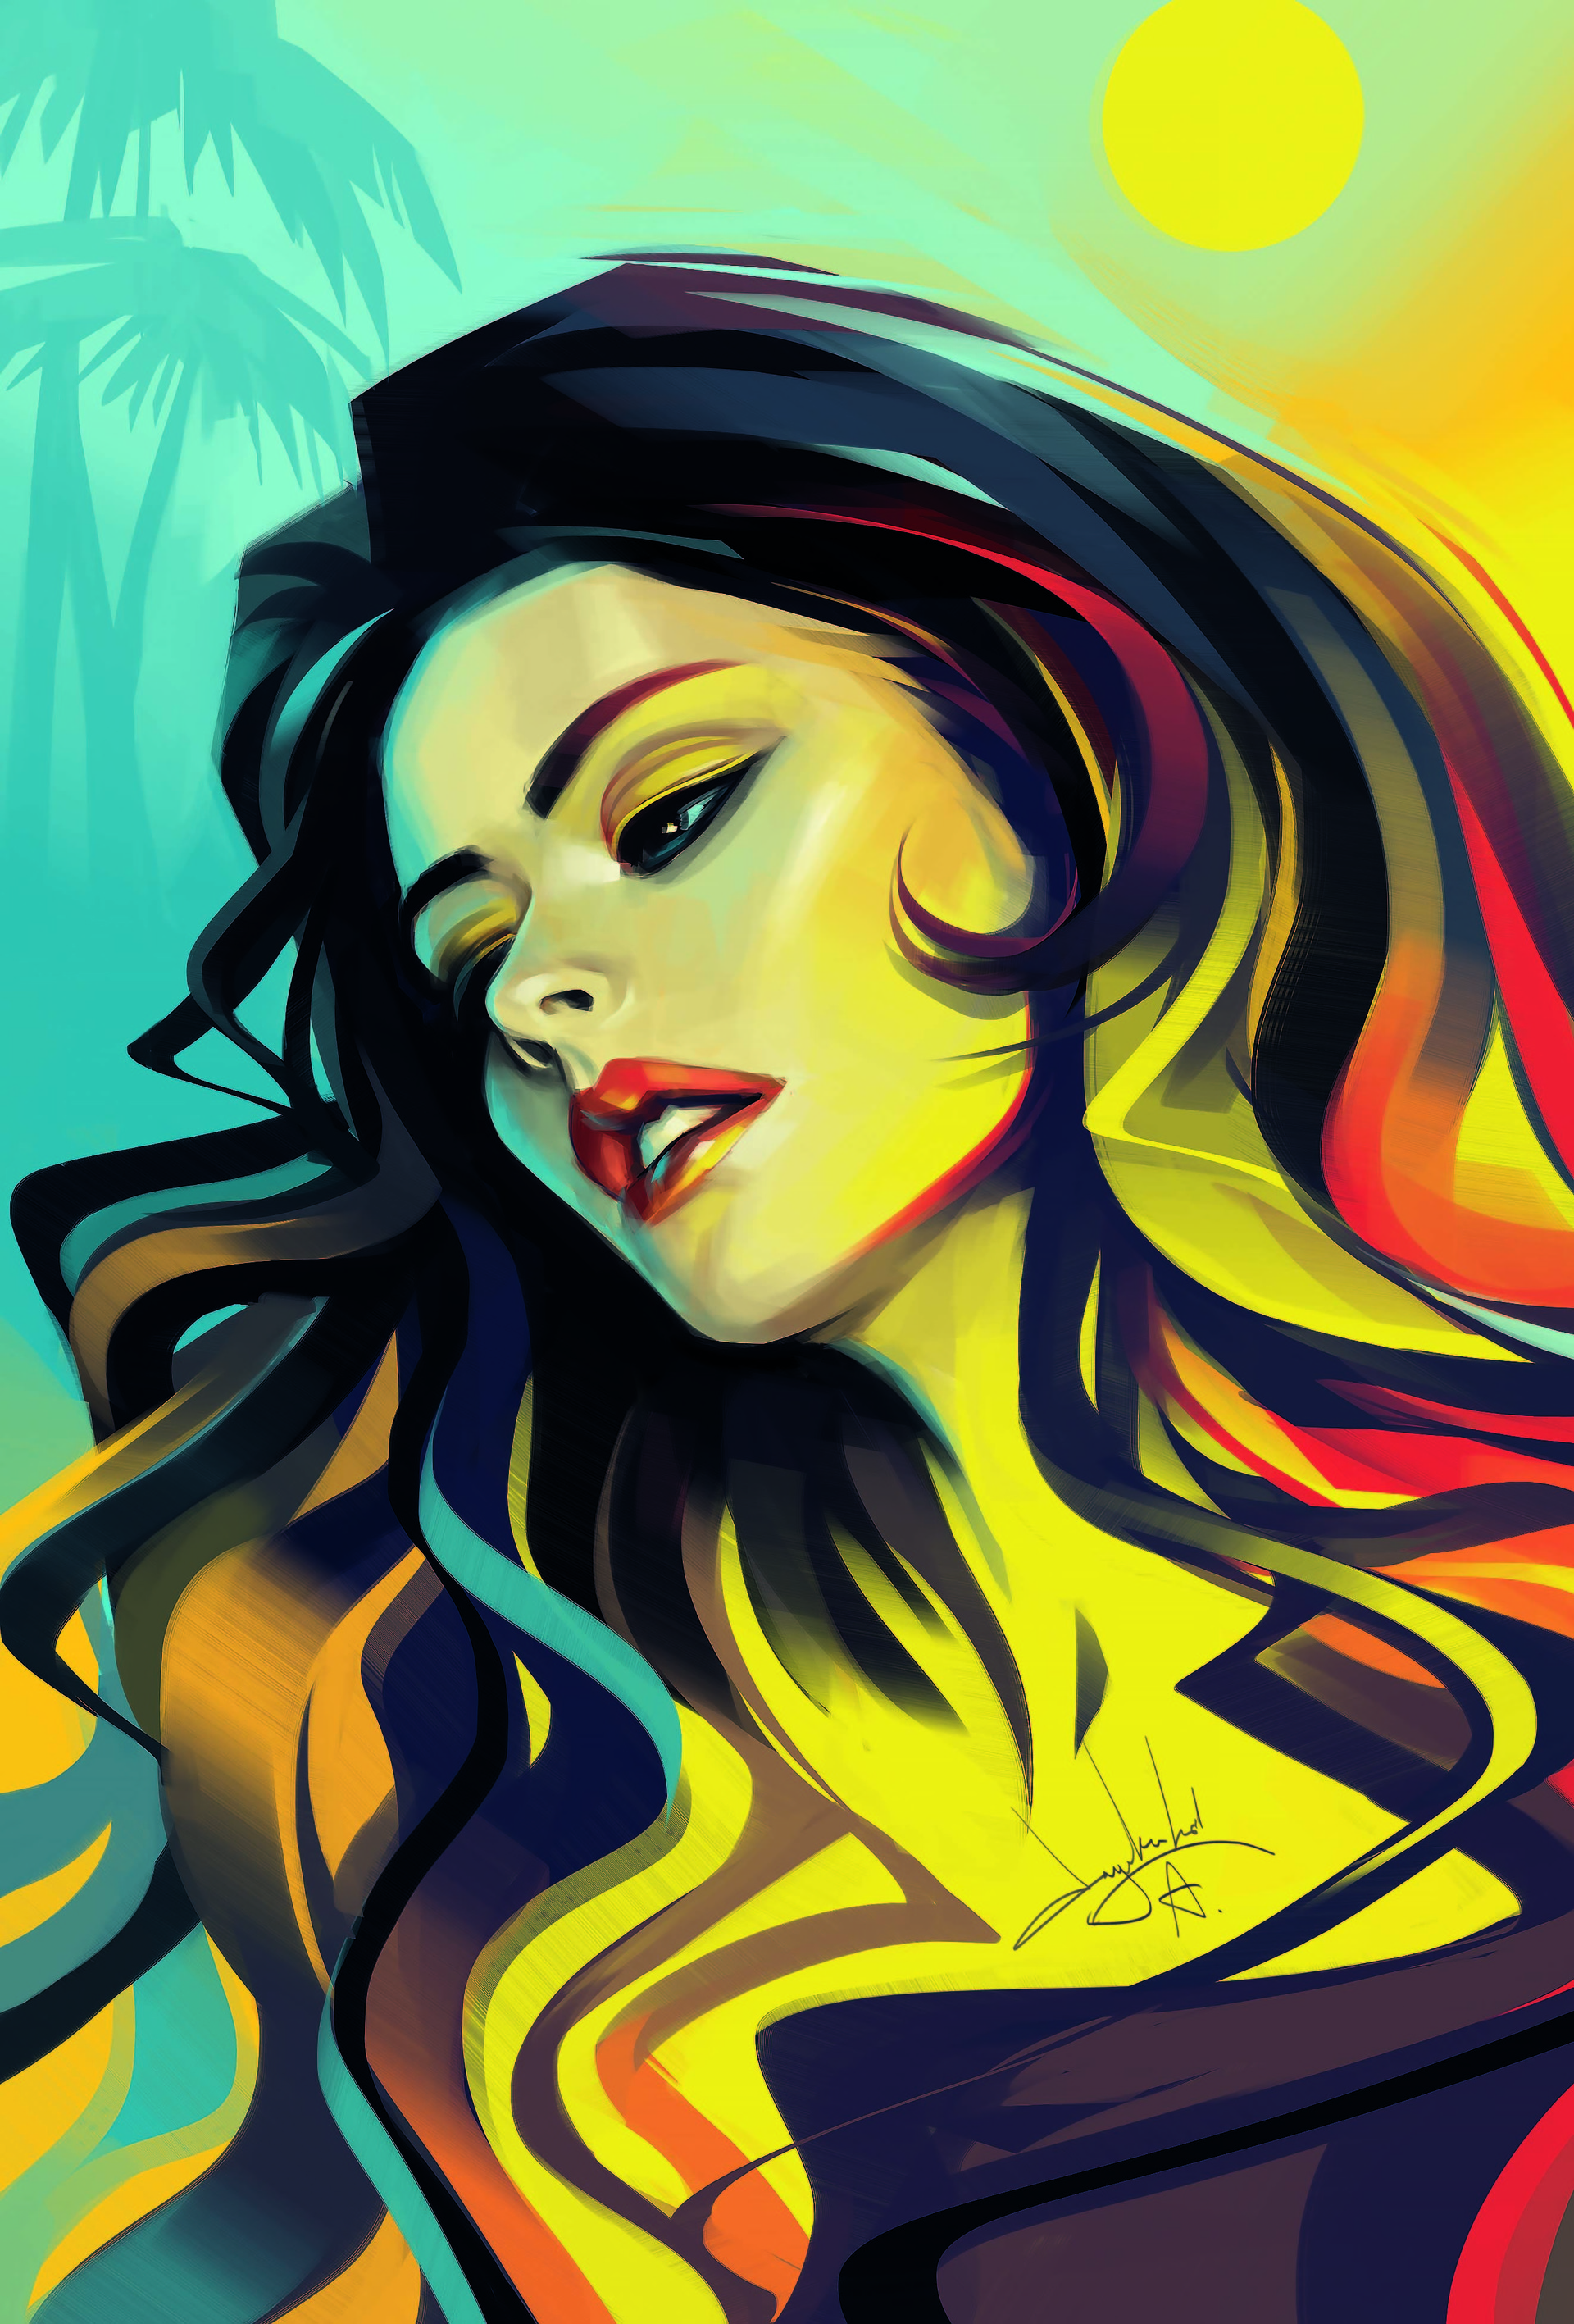 General 1920x2834 women long hair face red lipstick dark hair Sun portrait artwork ArtStation